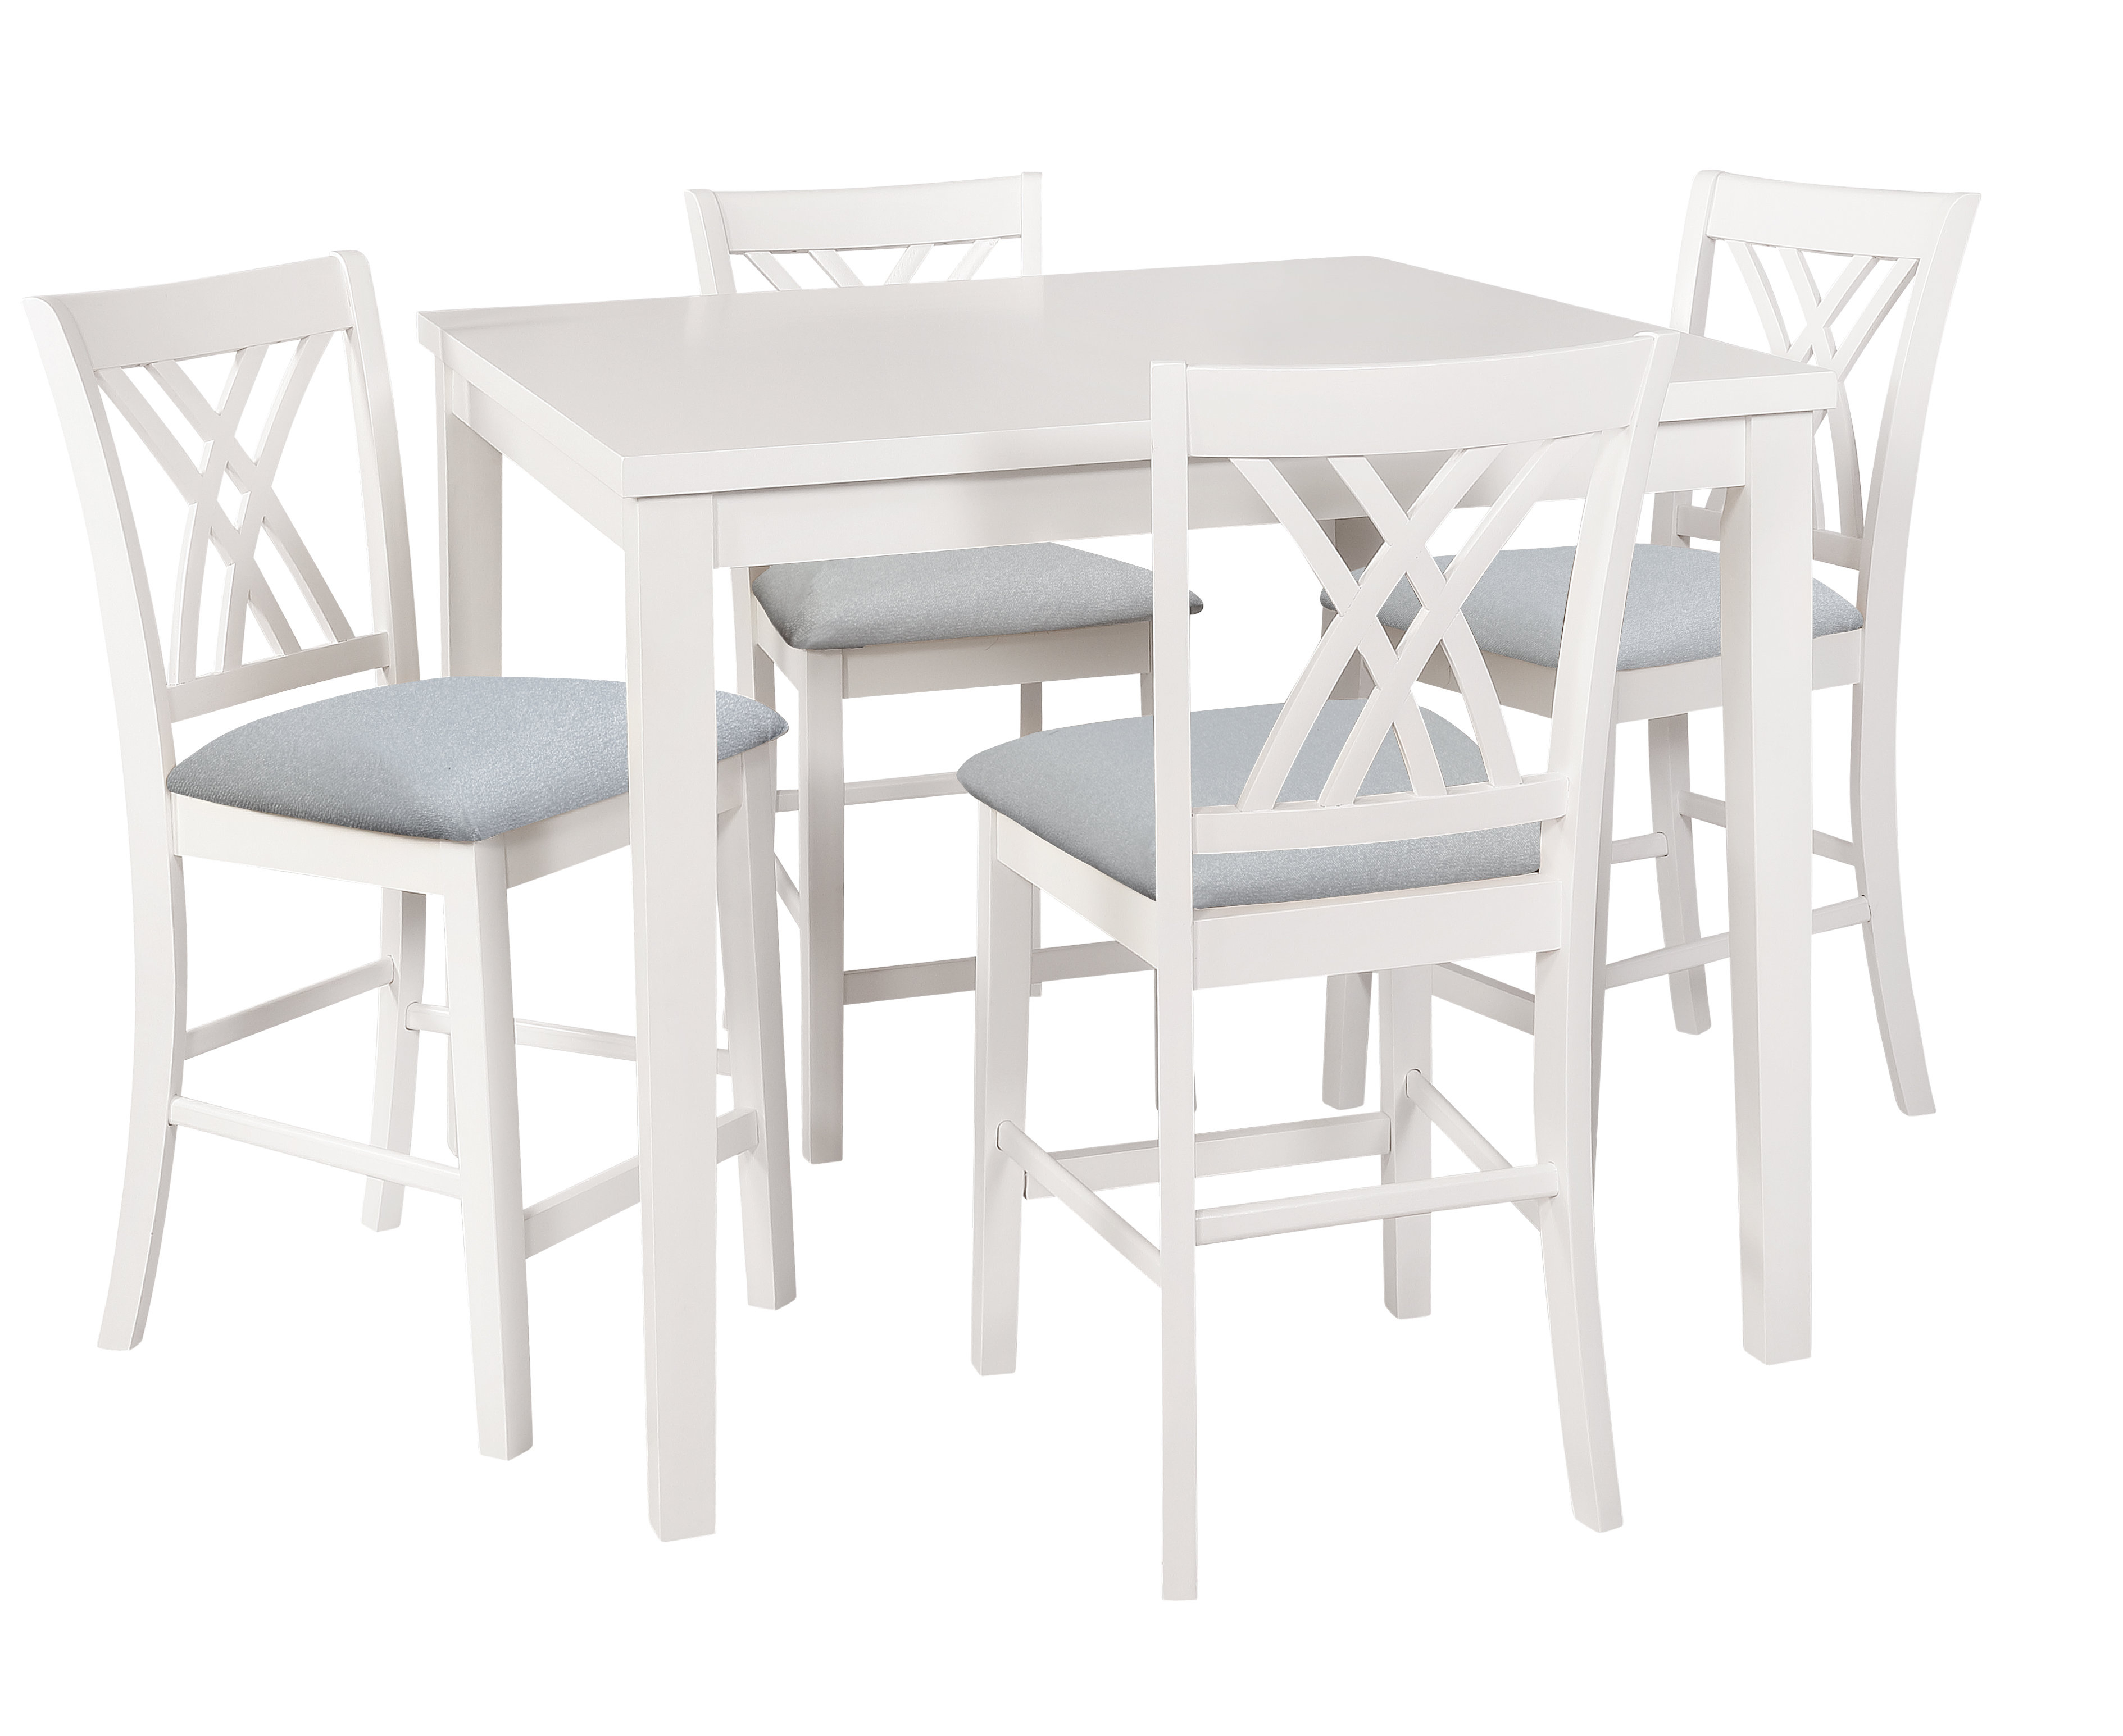 Gisella 5 Piece Breakfast Nook Dining Set For Most Popular 5 Piece Breakfast Nook Dining Sets (Photo 10 of 20)